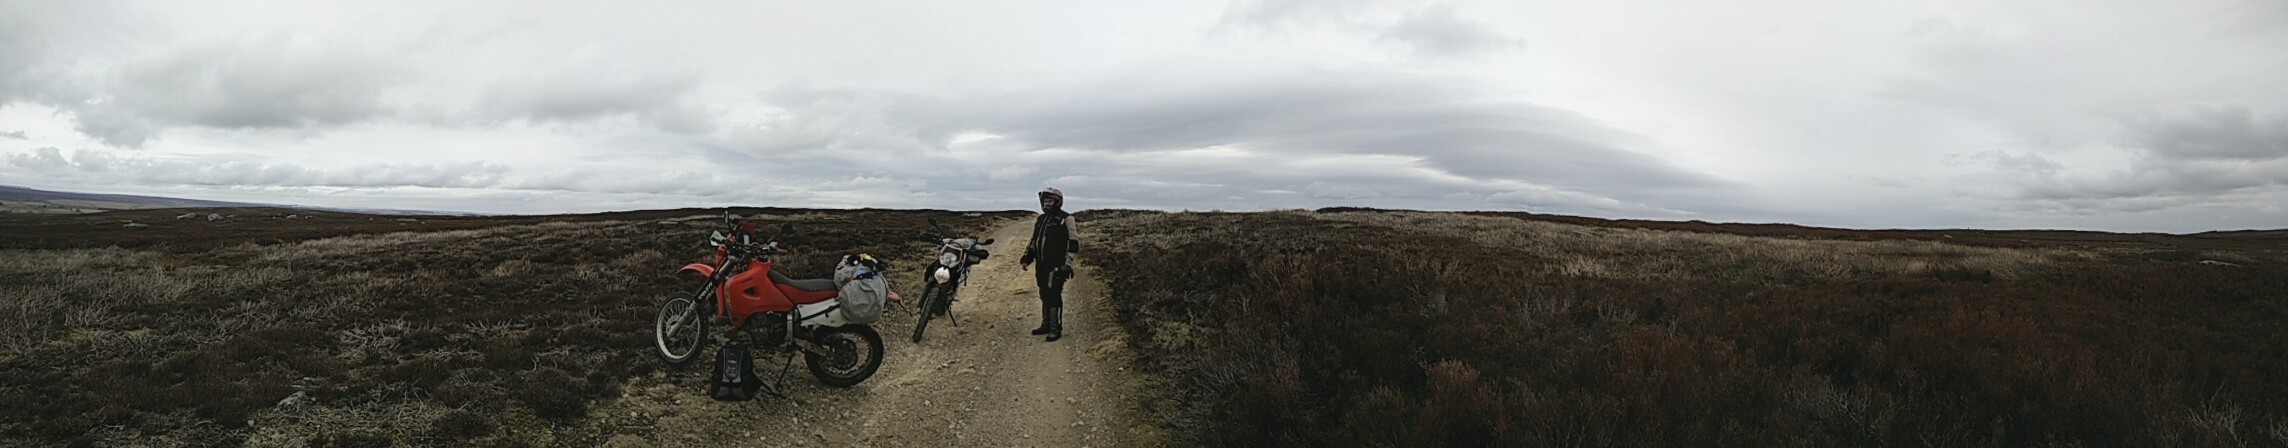 Not so epic journey to Yorkshire Pano_214